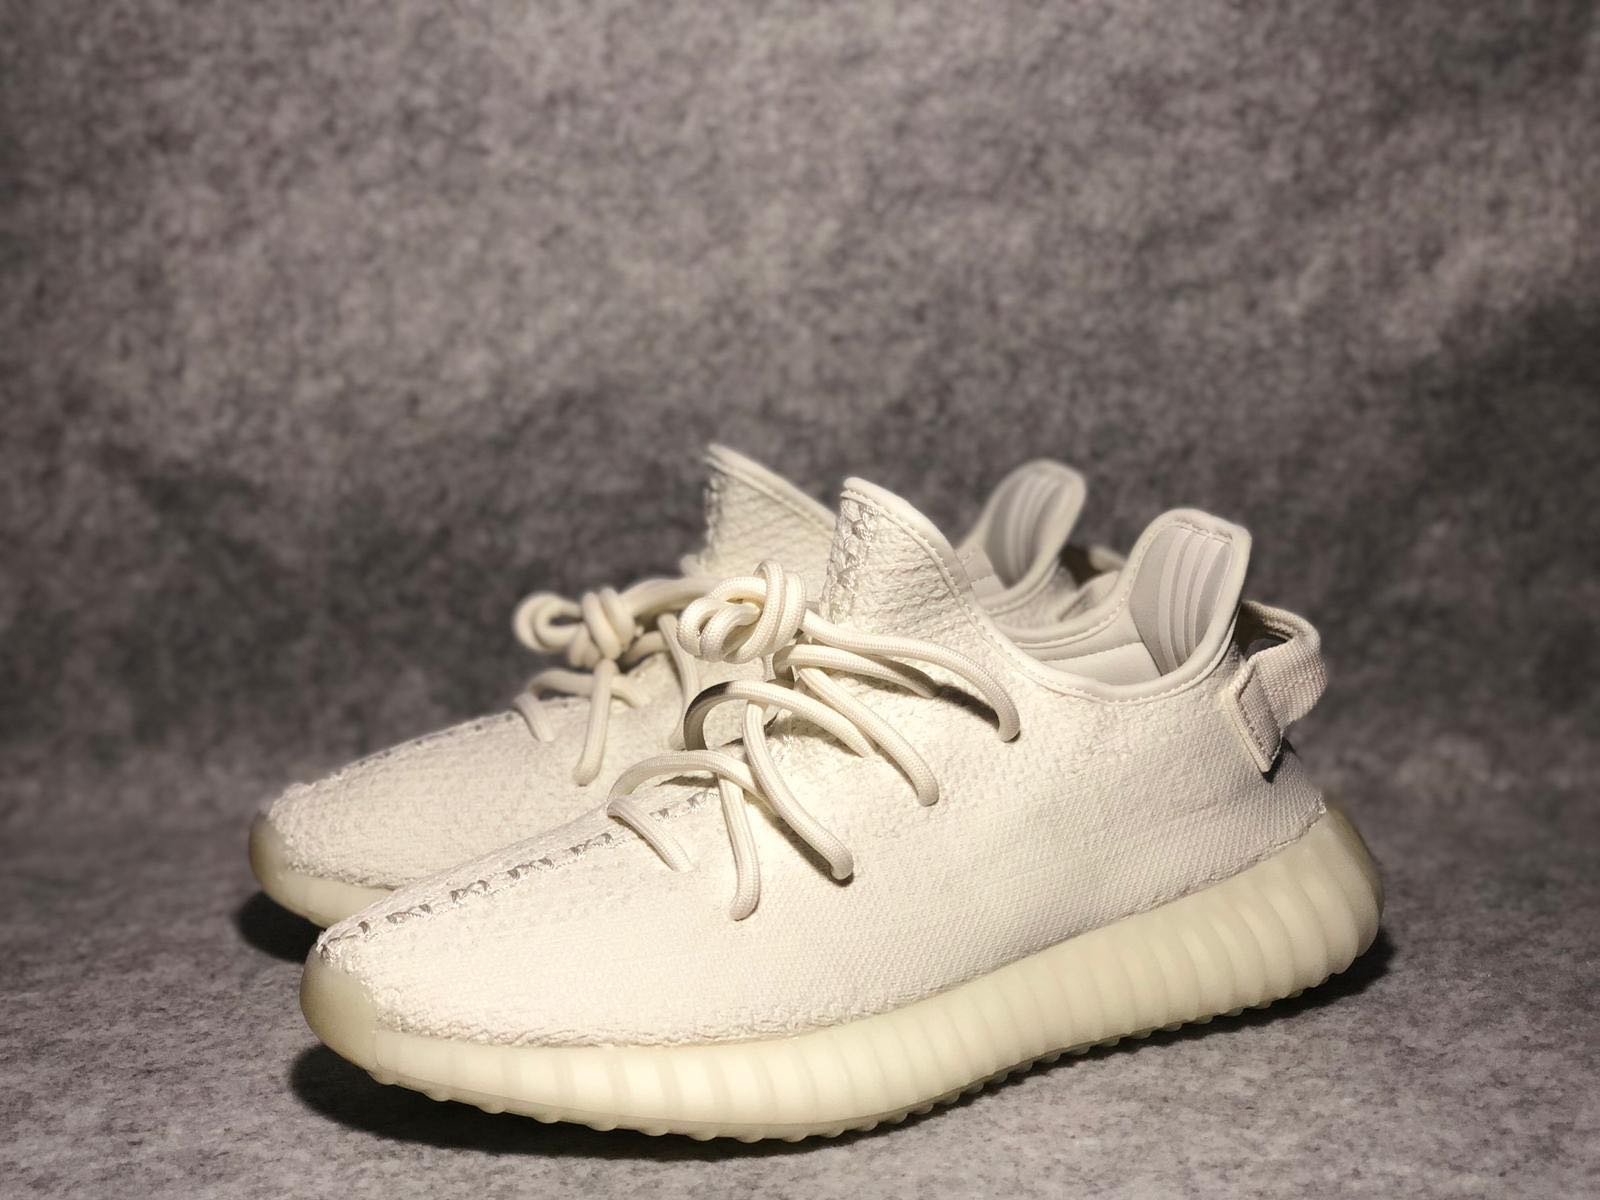 f1a81c641 Yeezy Boost 350 V2 Cream US 7